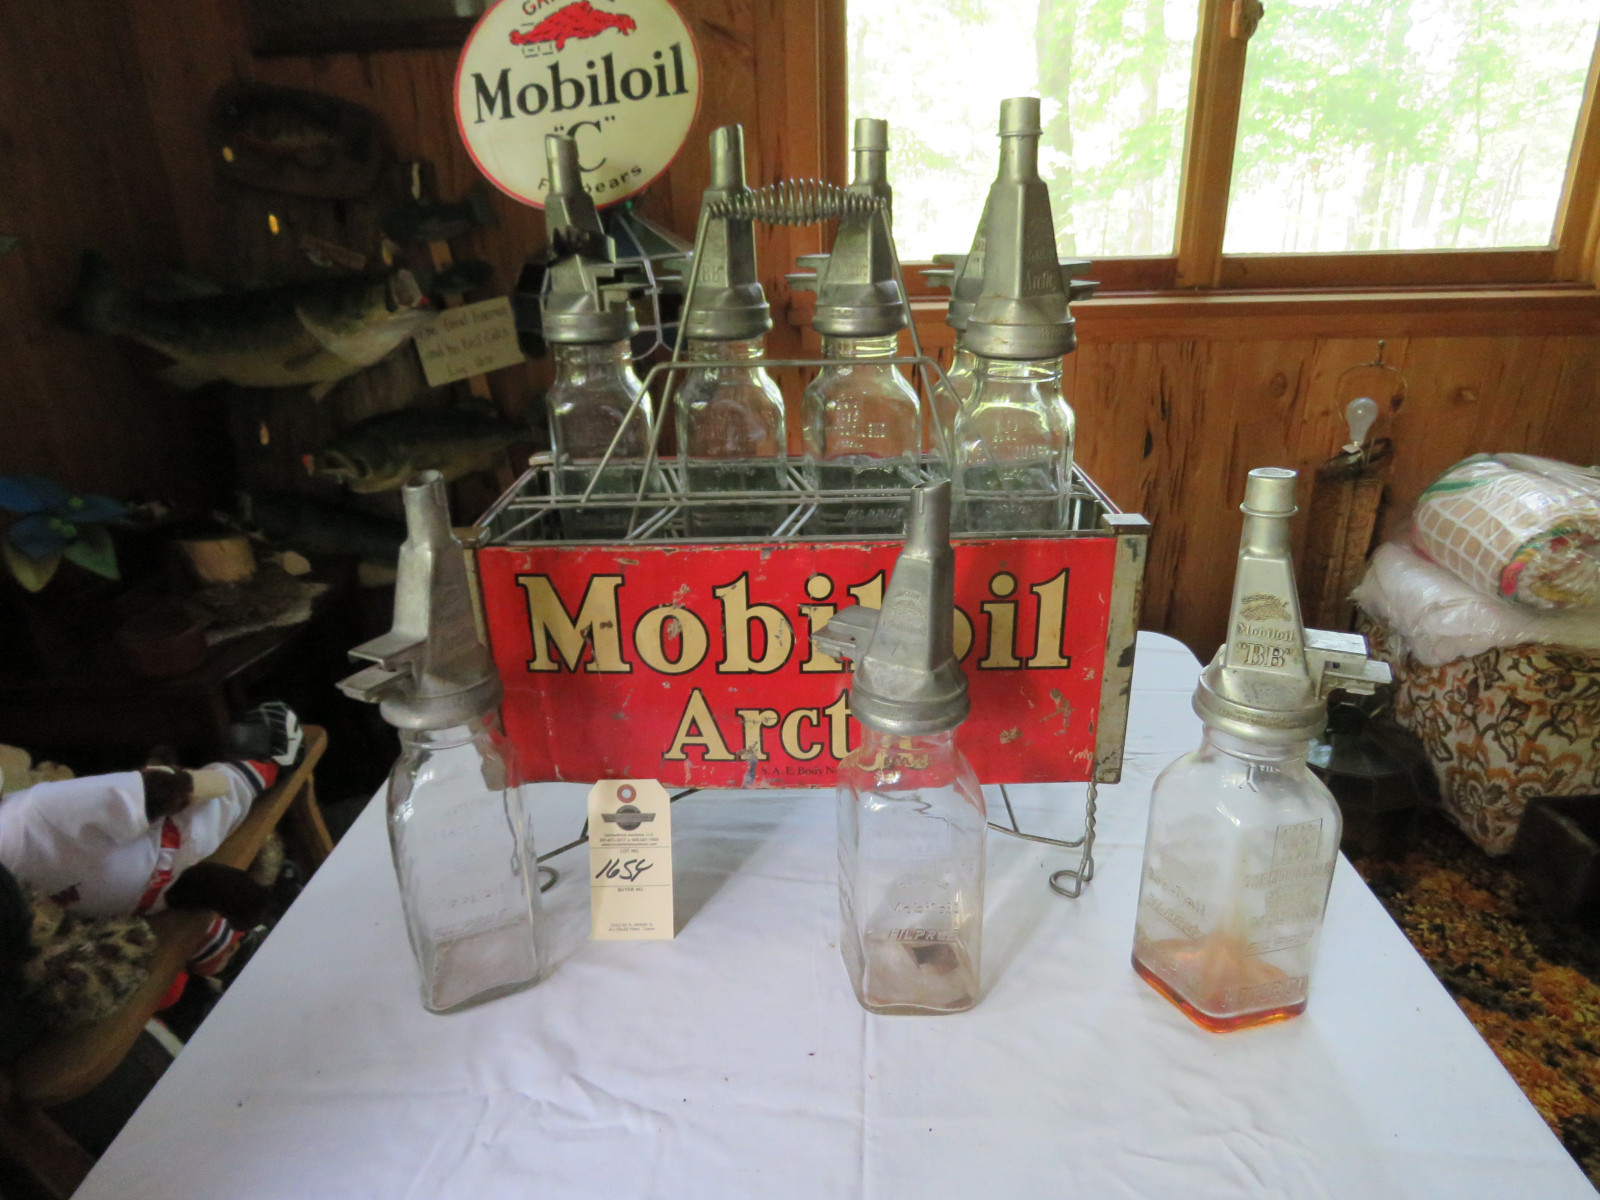 Rare Glass Mobil Oil Bottles in Rack with MobilOil Advertising - Image 4